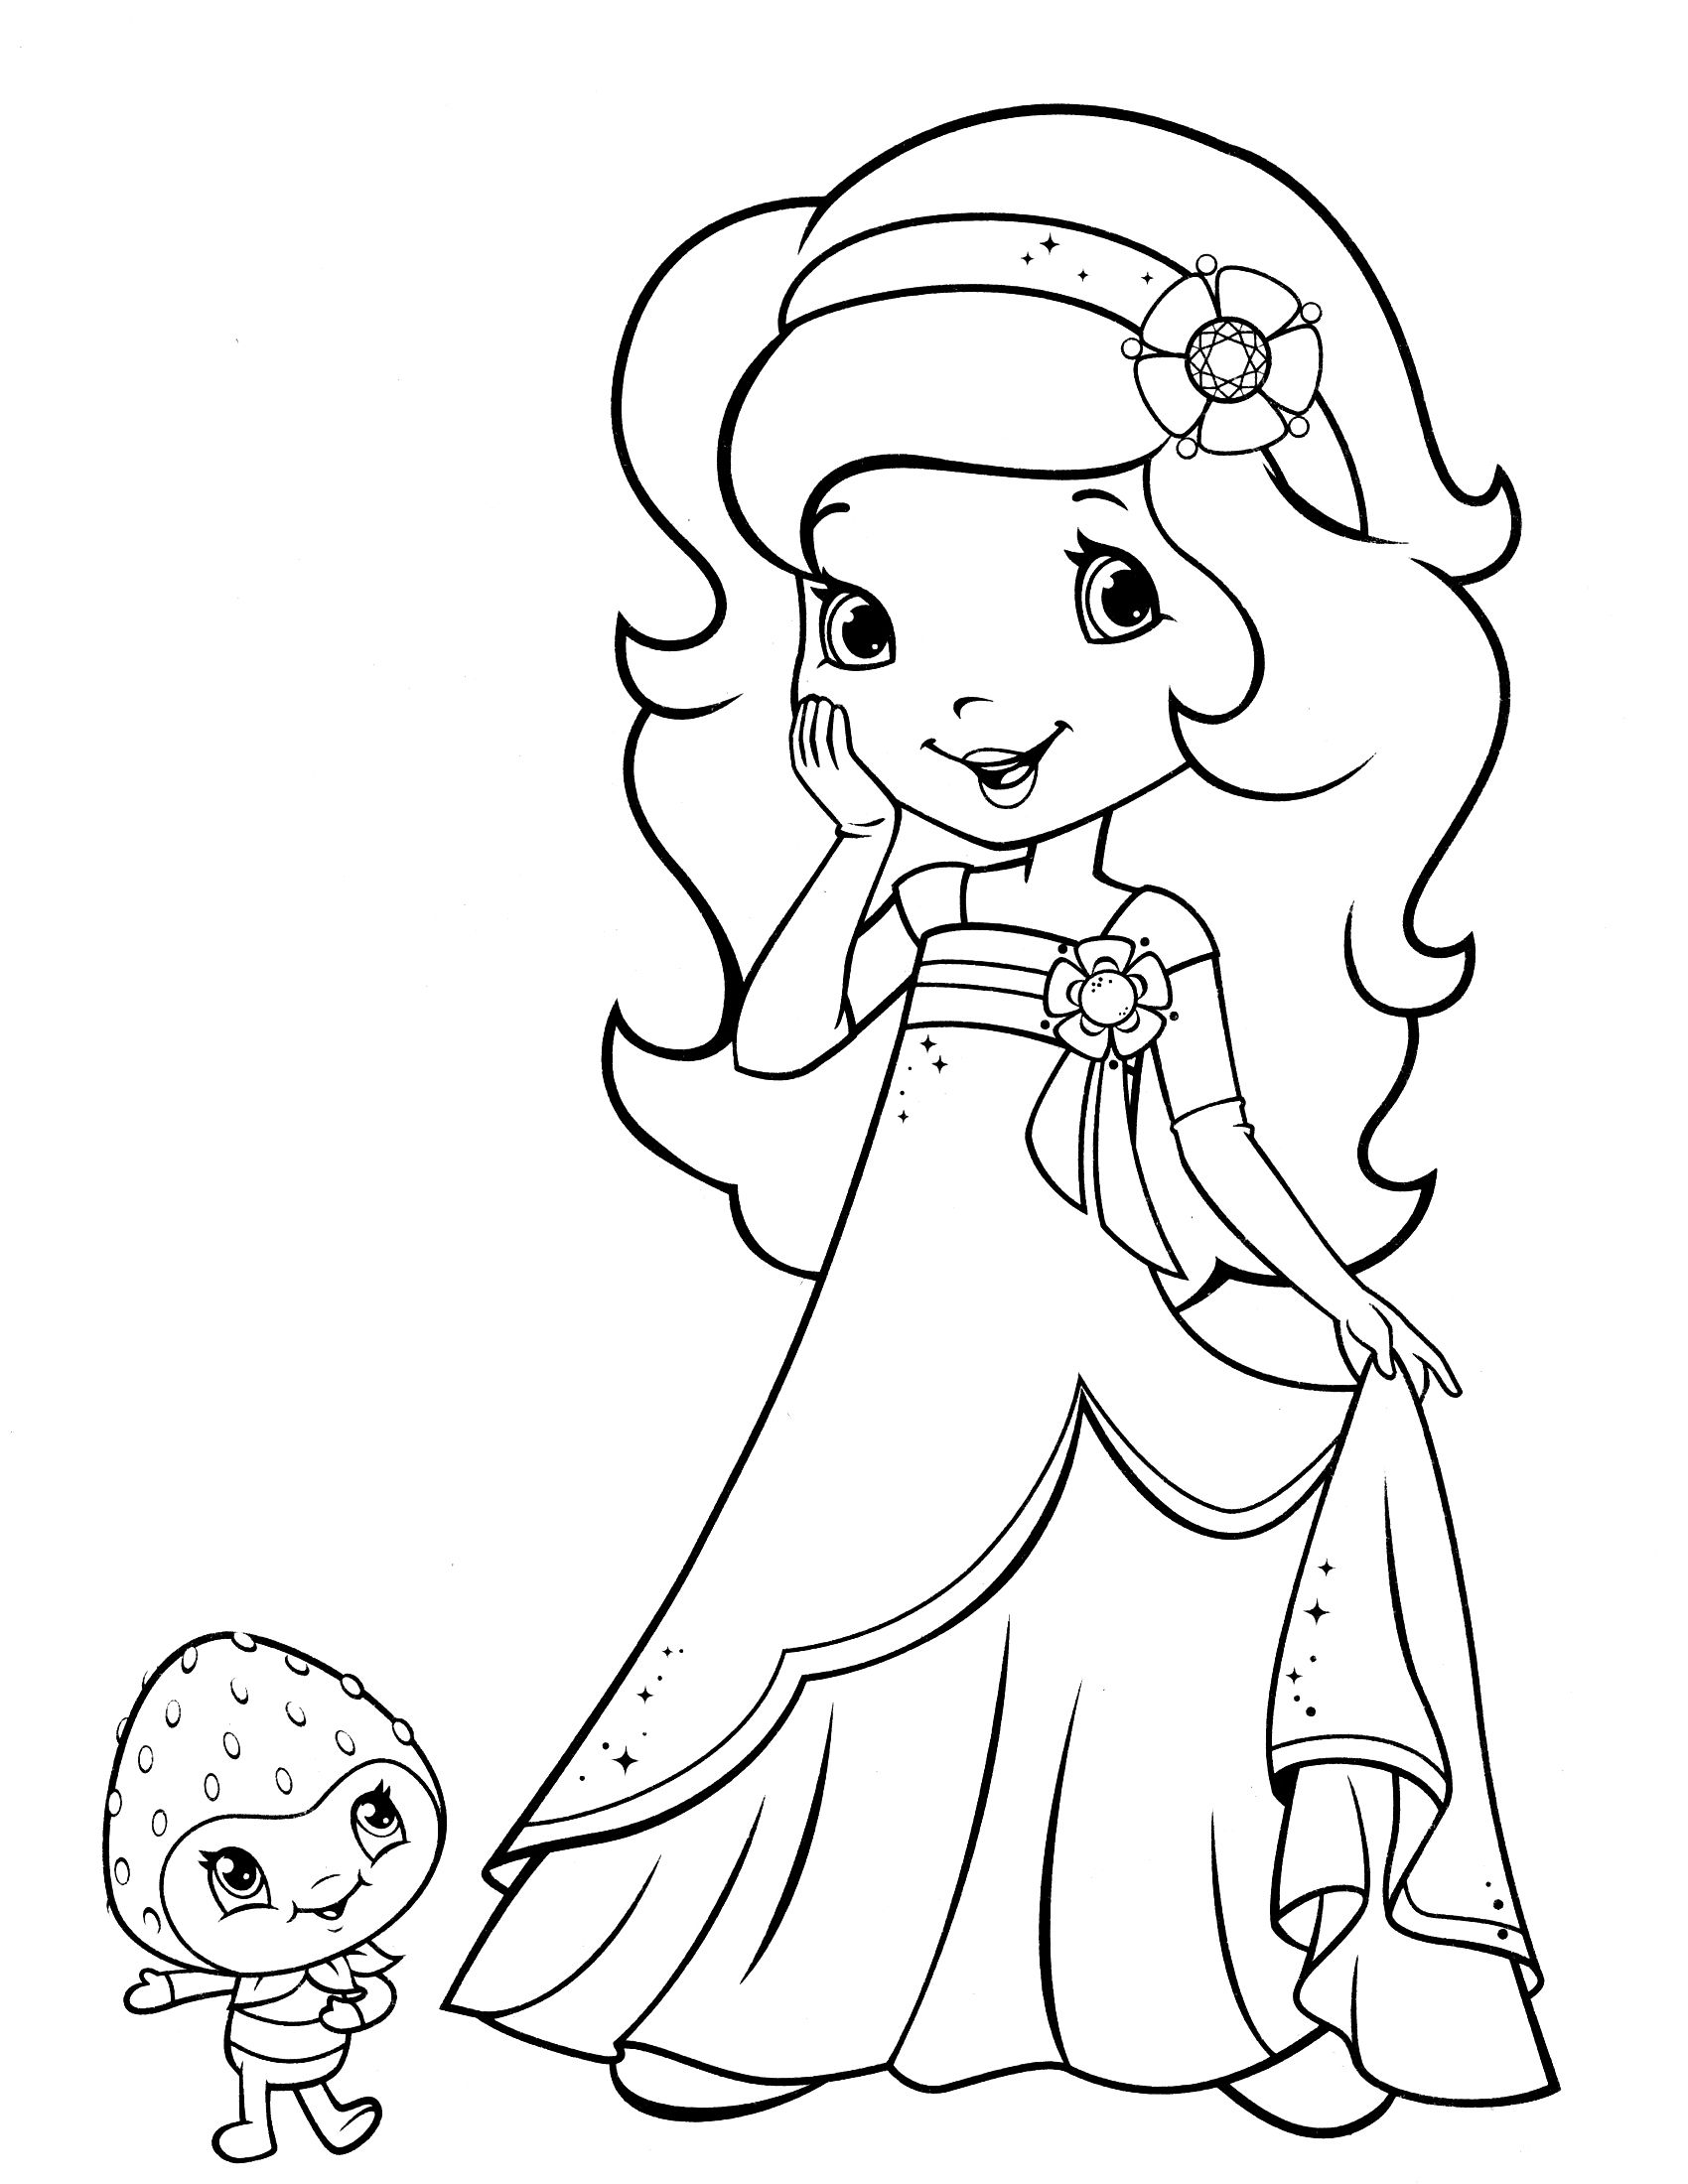 Printable coloring pages strawberry shortcake - Printable Coloring Pages Pdf